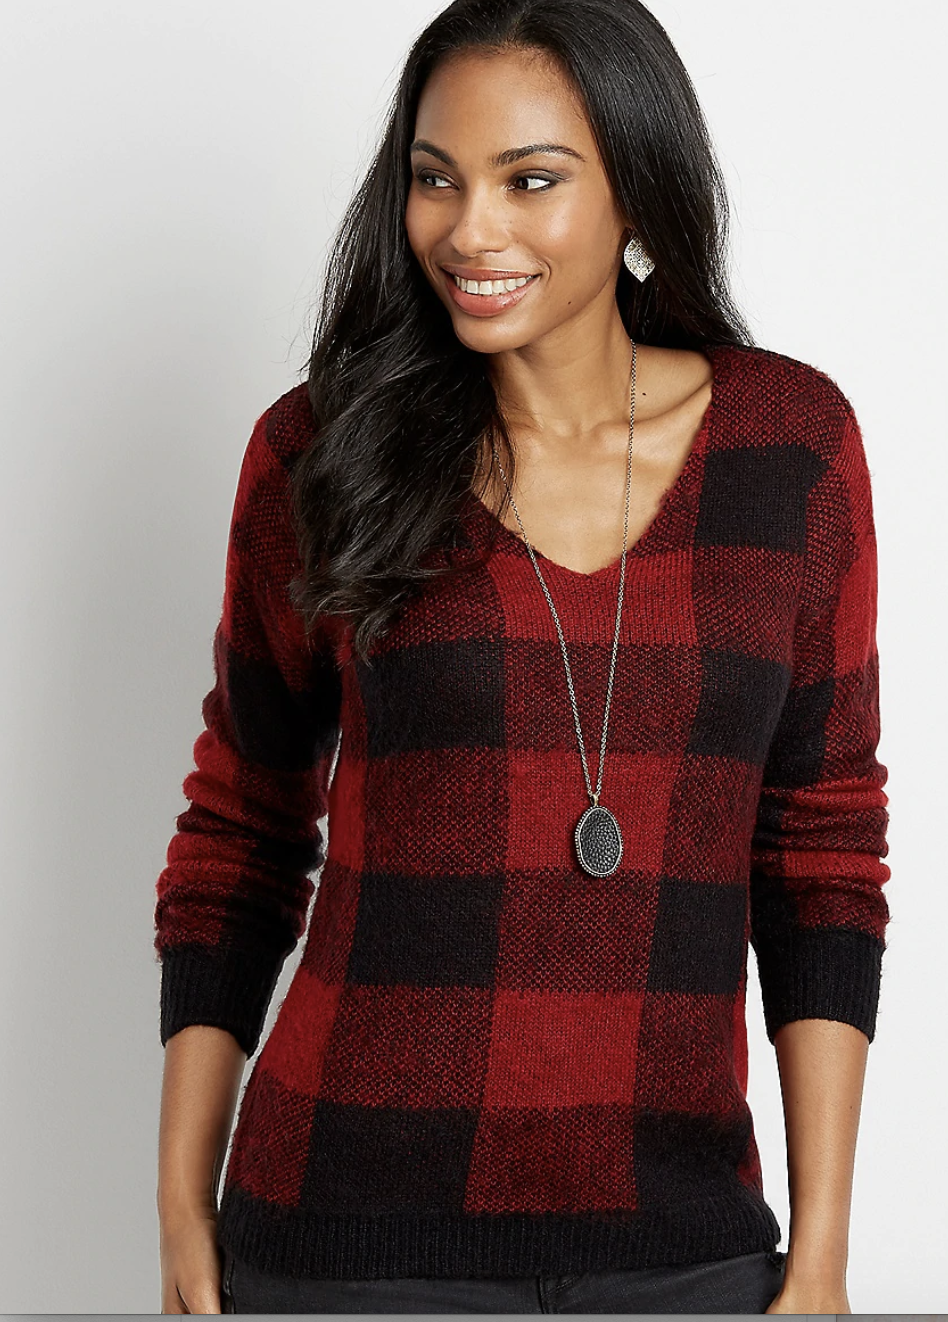 a model in the red and black sweater